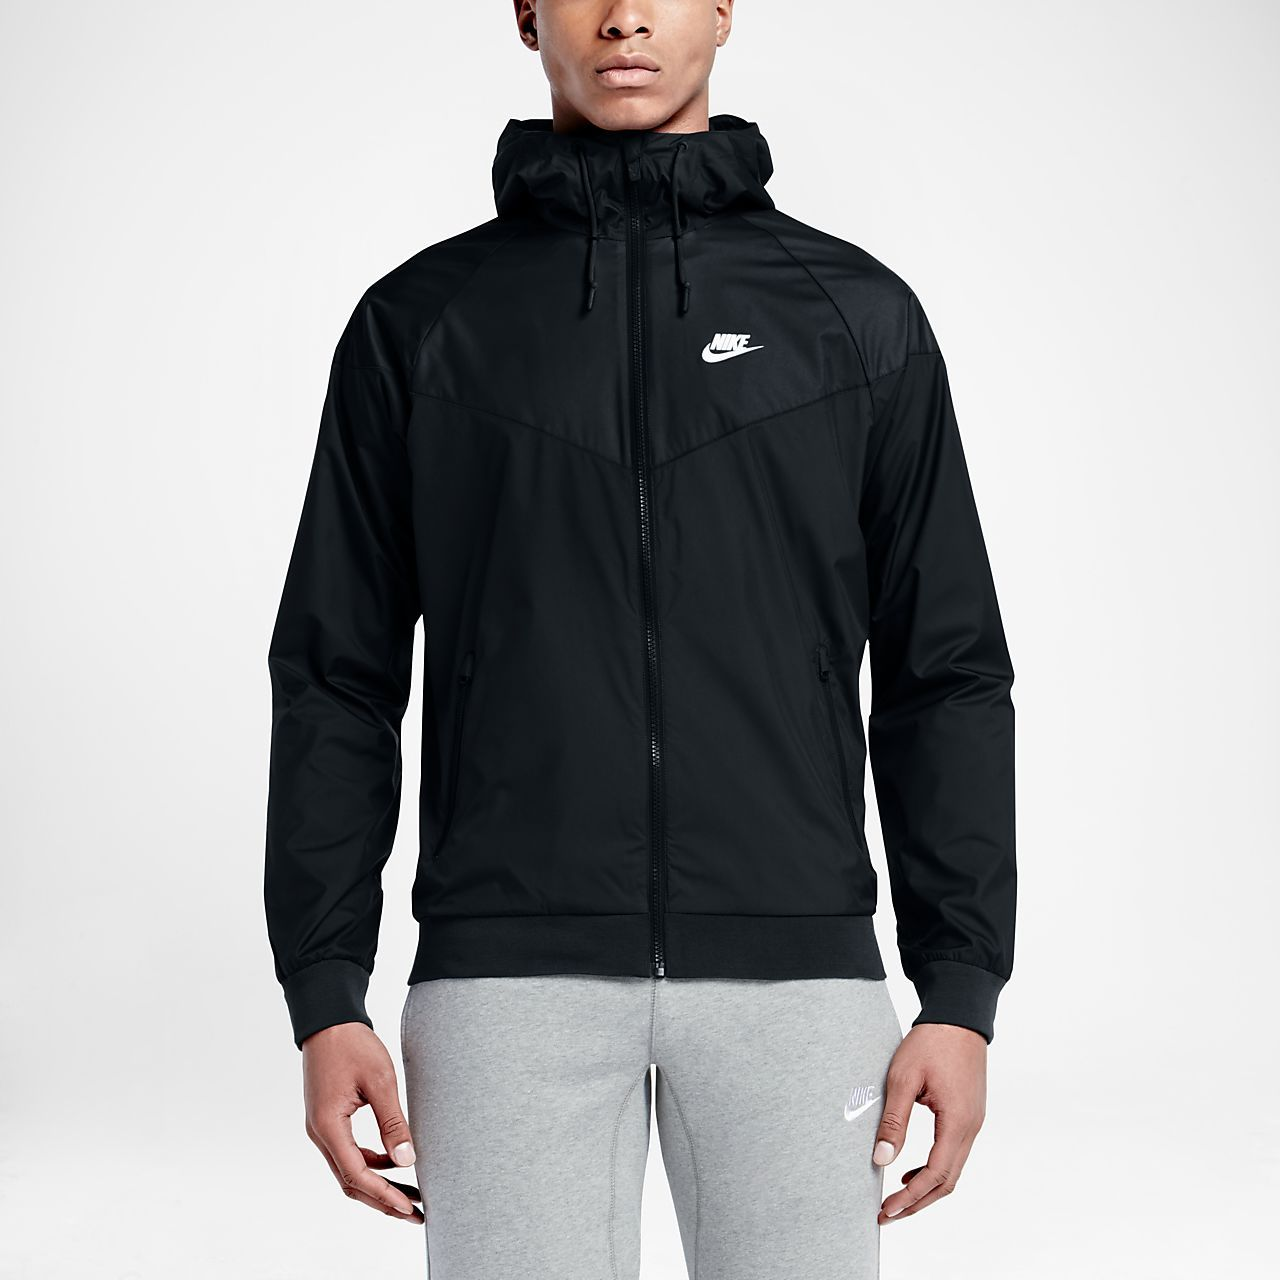 300b82df0f Nike Sportswear Windrunner Men s Jacket